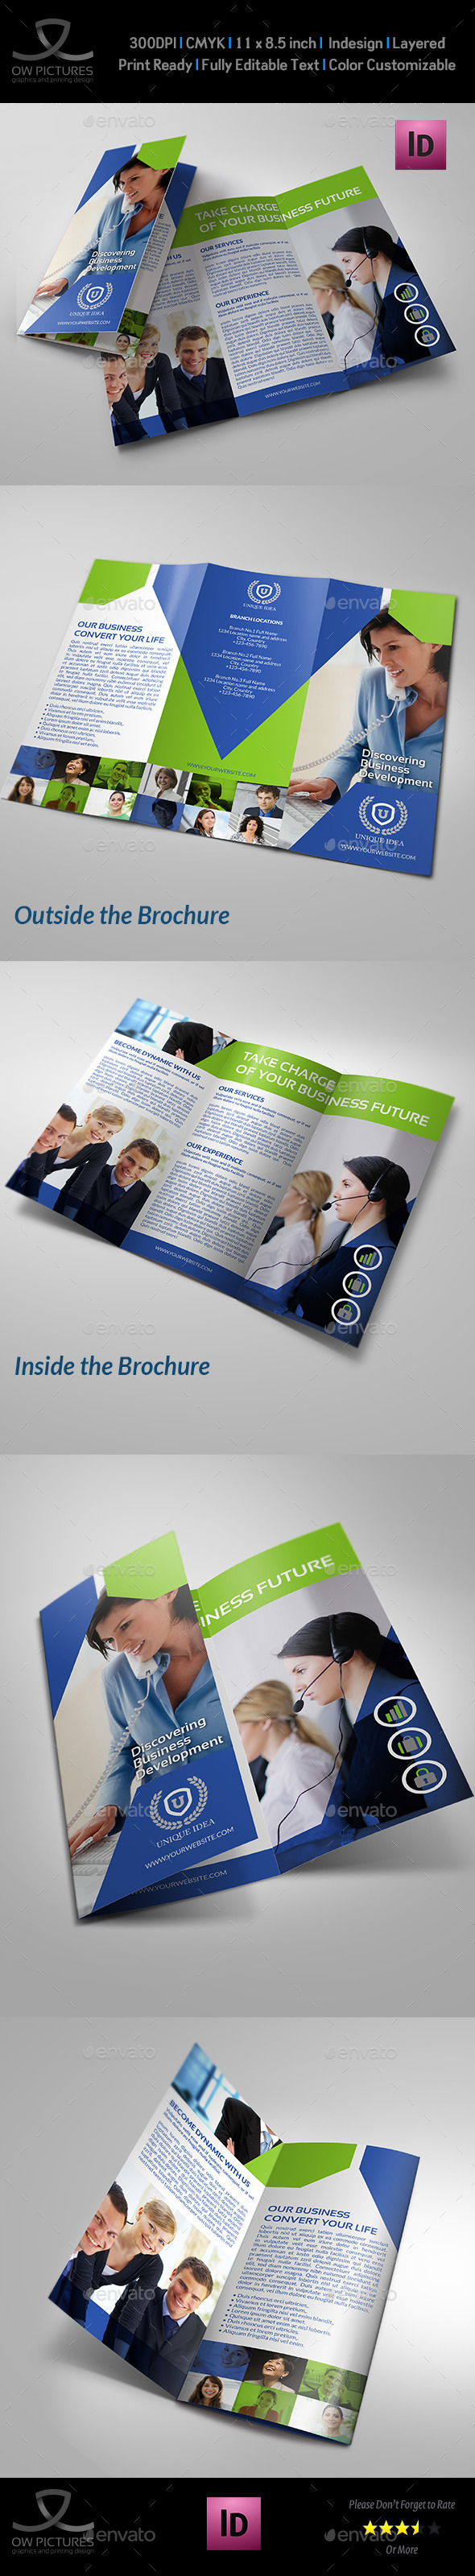 Company Brochure Tri-Fold Template Vol.15 - Corporate Brochures